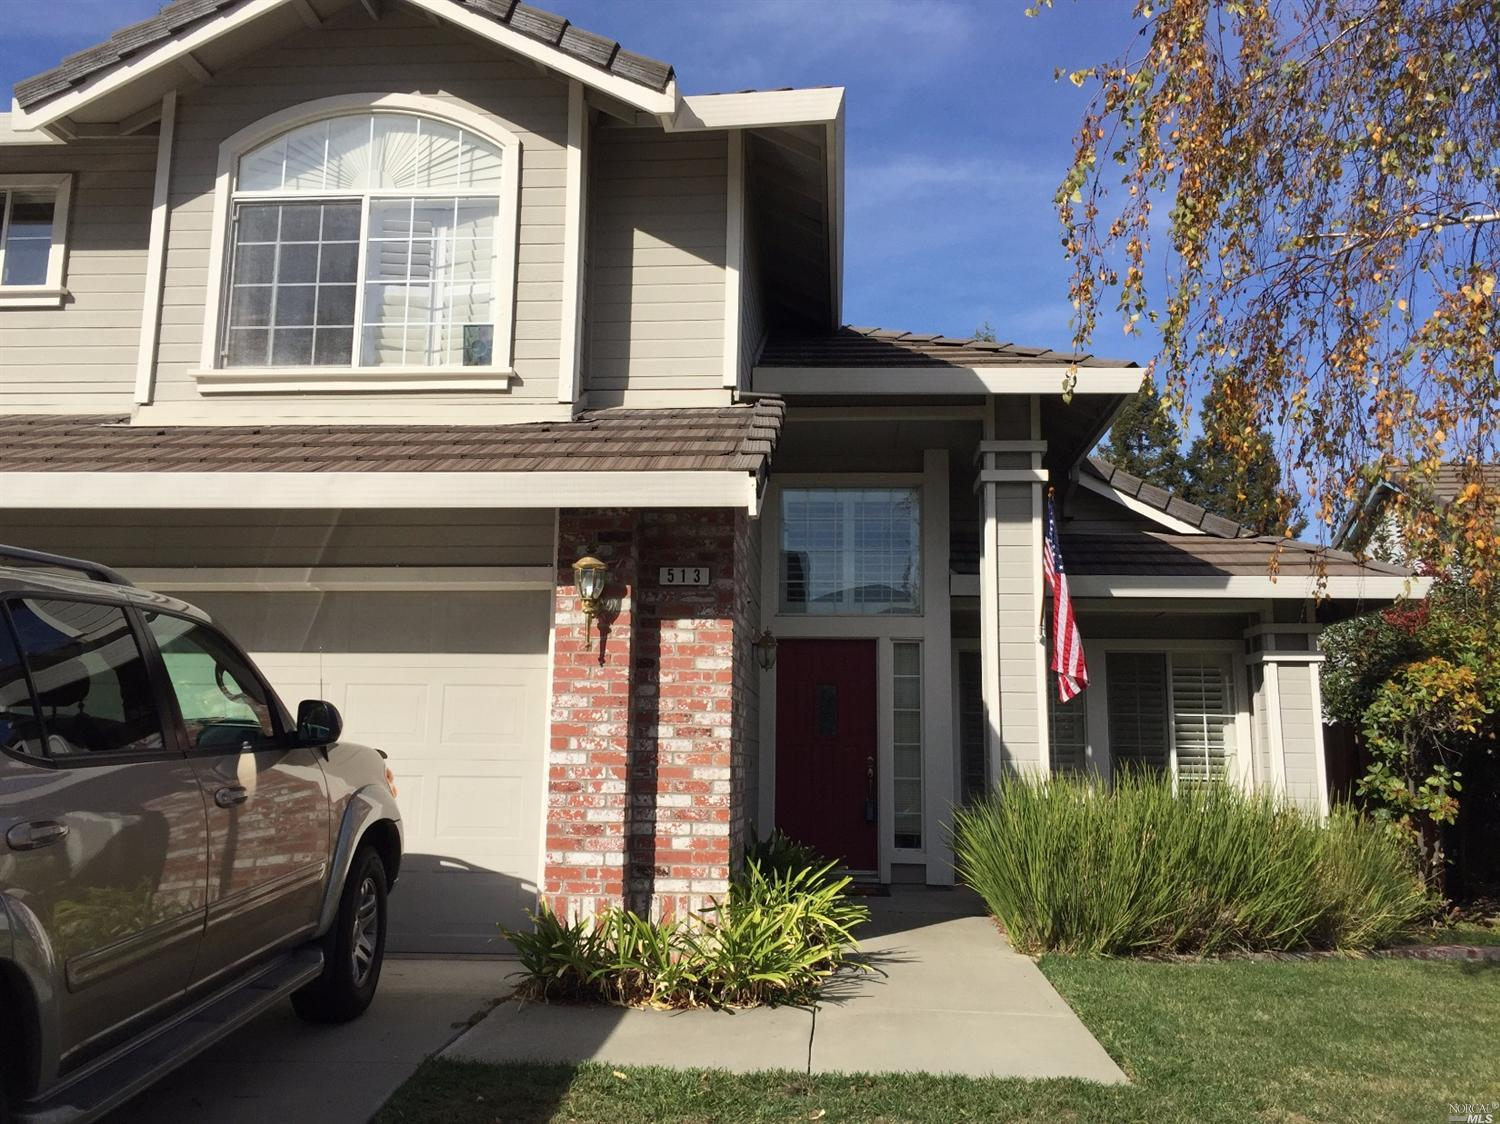 513 Stanford St, Vacaville, CA